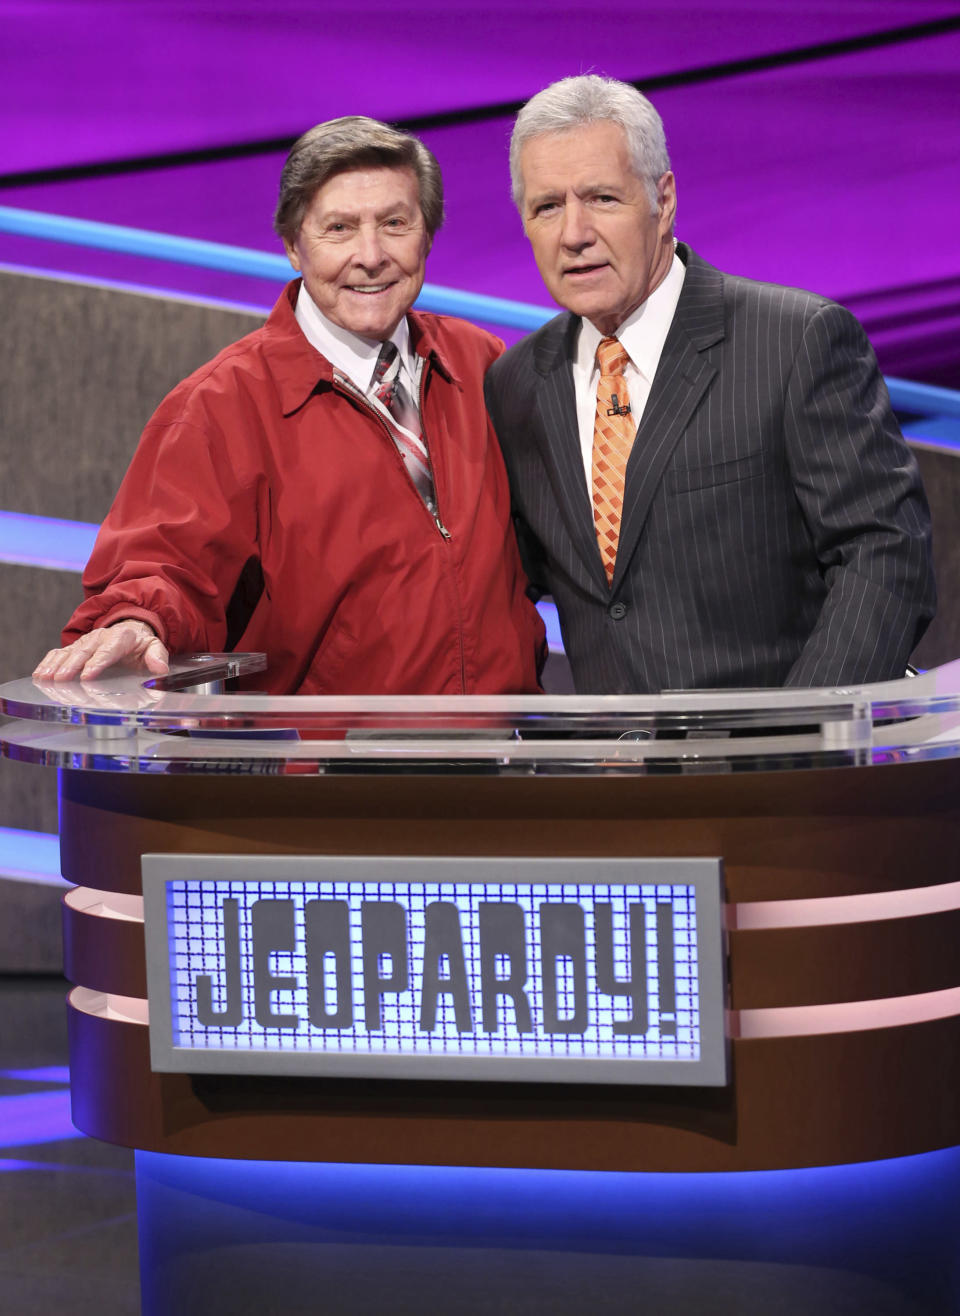 """In this 2014 image provided by Jeopardy Productions, Inc., show announcer Johnny Gilbert, left, and game show host Alex Trebek appear on the set of """"Jeopardy!"""" Gilbert worked with Trebek for 37 years and was reluctant to continue after losing his admired colleague. But others with the show urged him to consider his role as a comforting touchstone for viewers who also were in mourning. (Carol Kaelson/Jeopardy Productions, Inc. via AP)"""